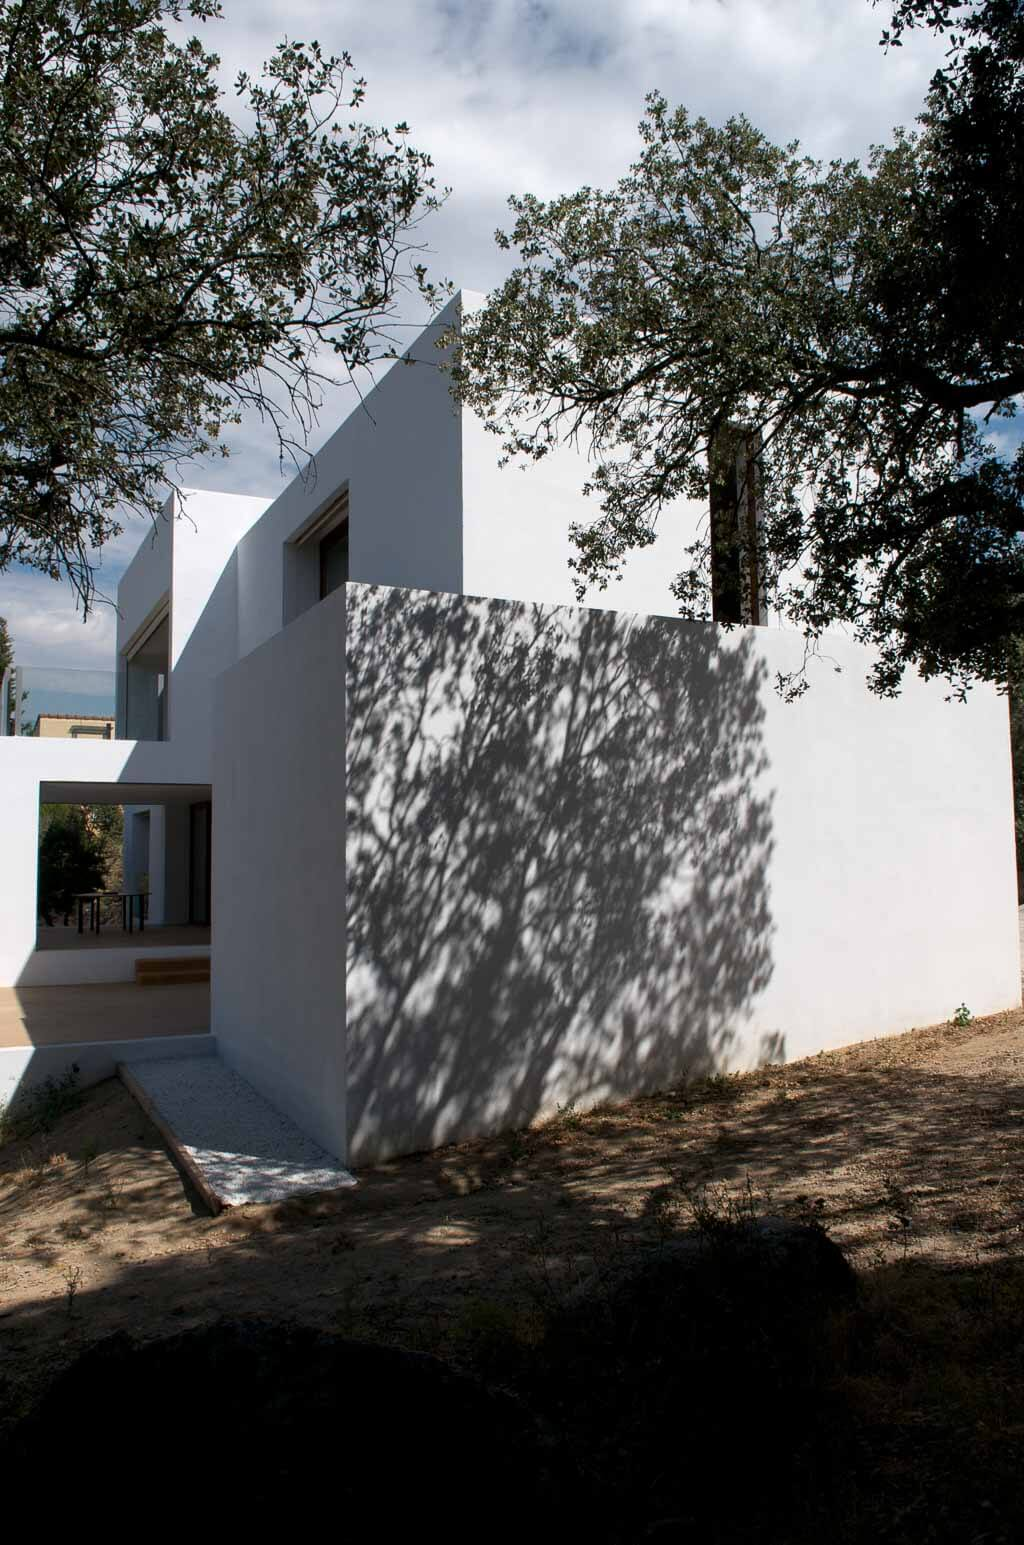 Houses design in Valdemorillo